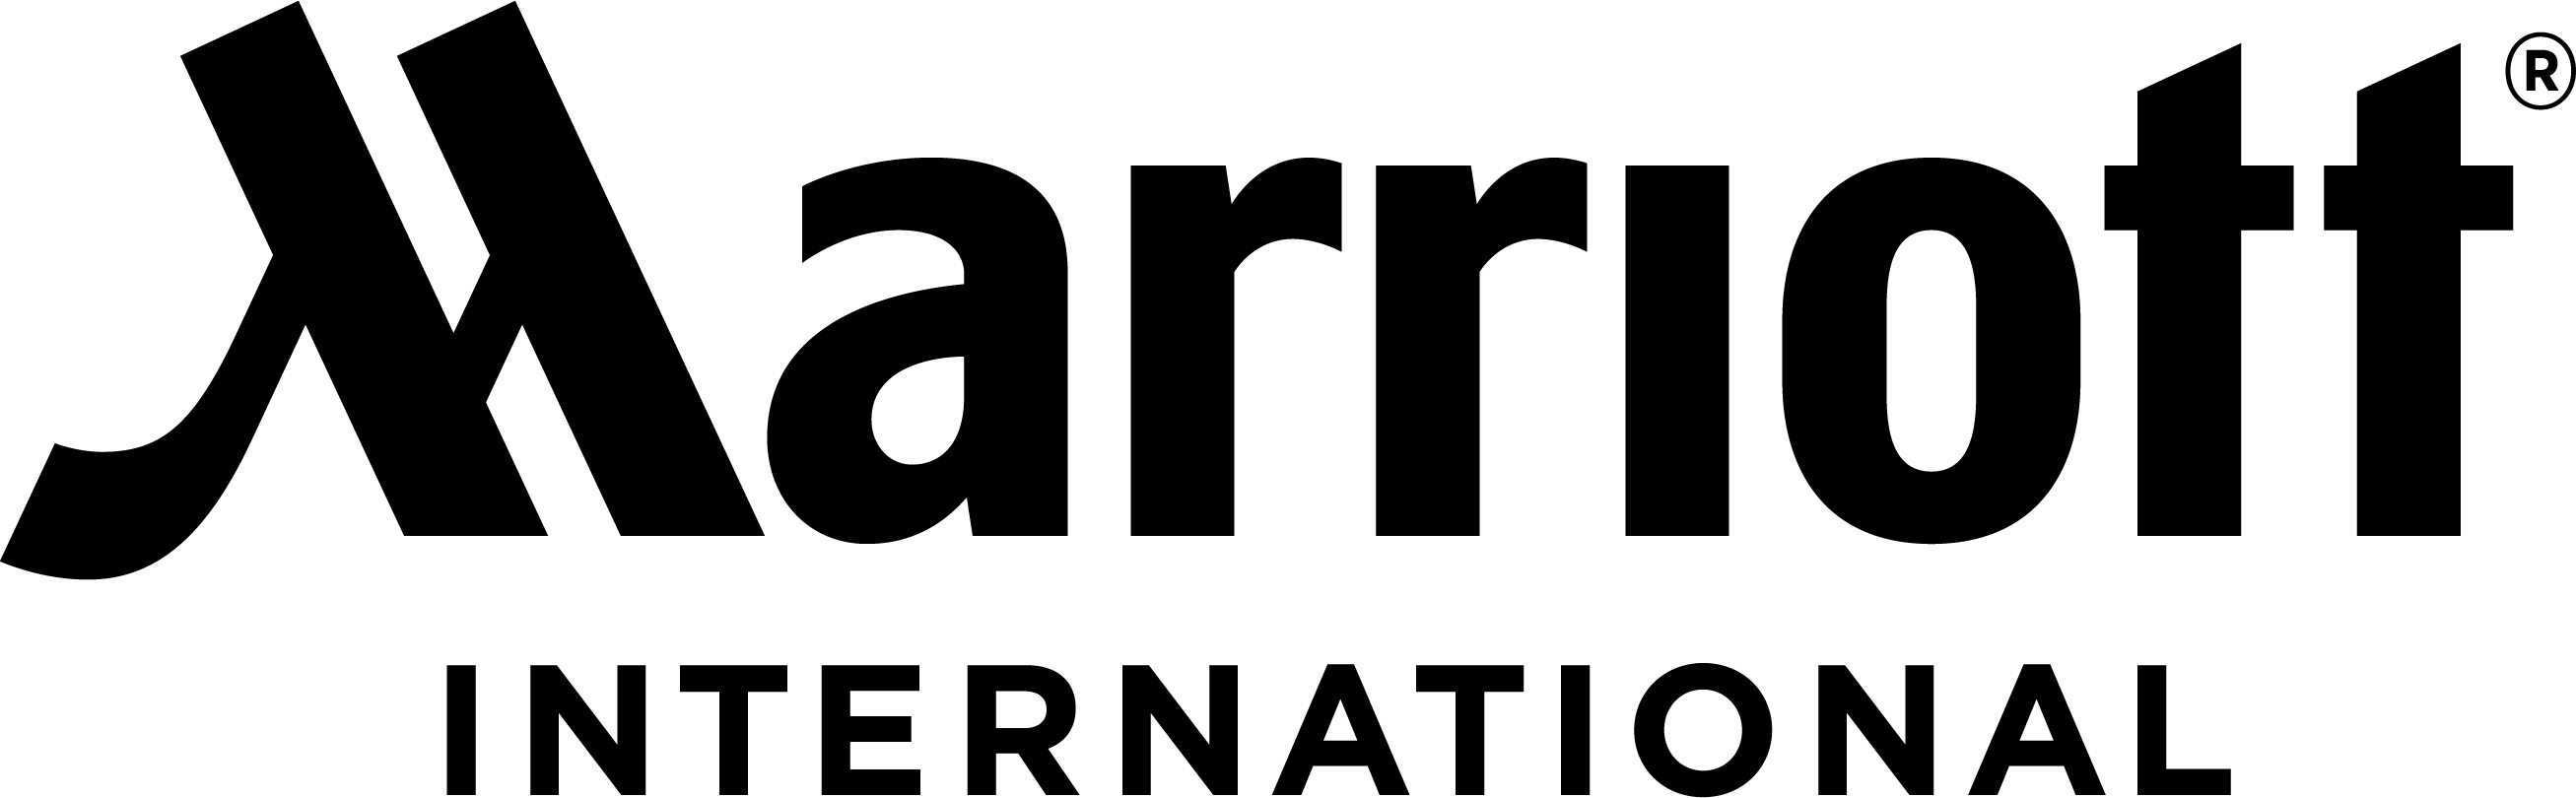 Marriott International, Inc. logo (PRNewsfoto/Marriott International, Inc.)